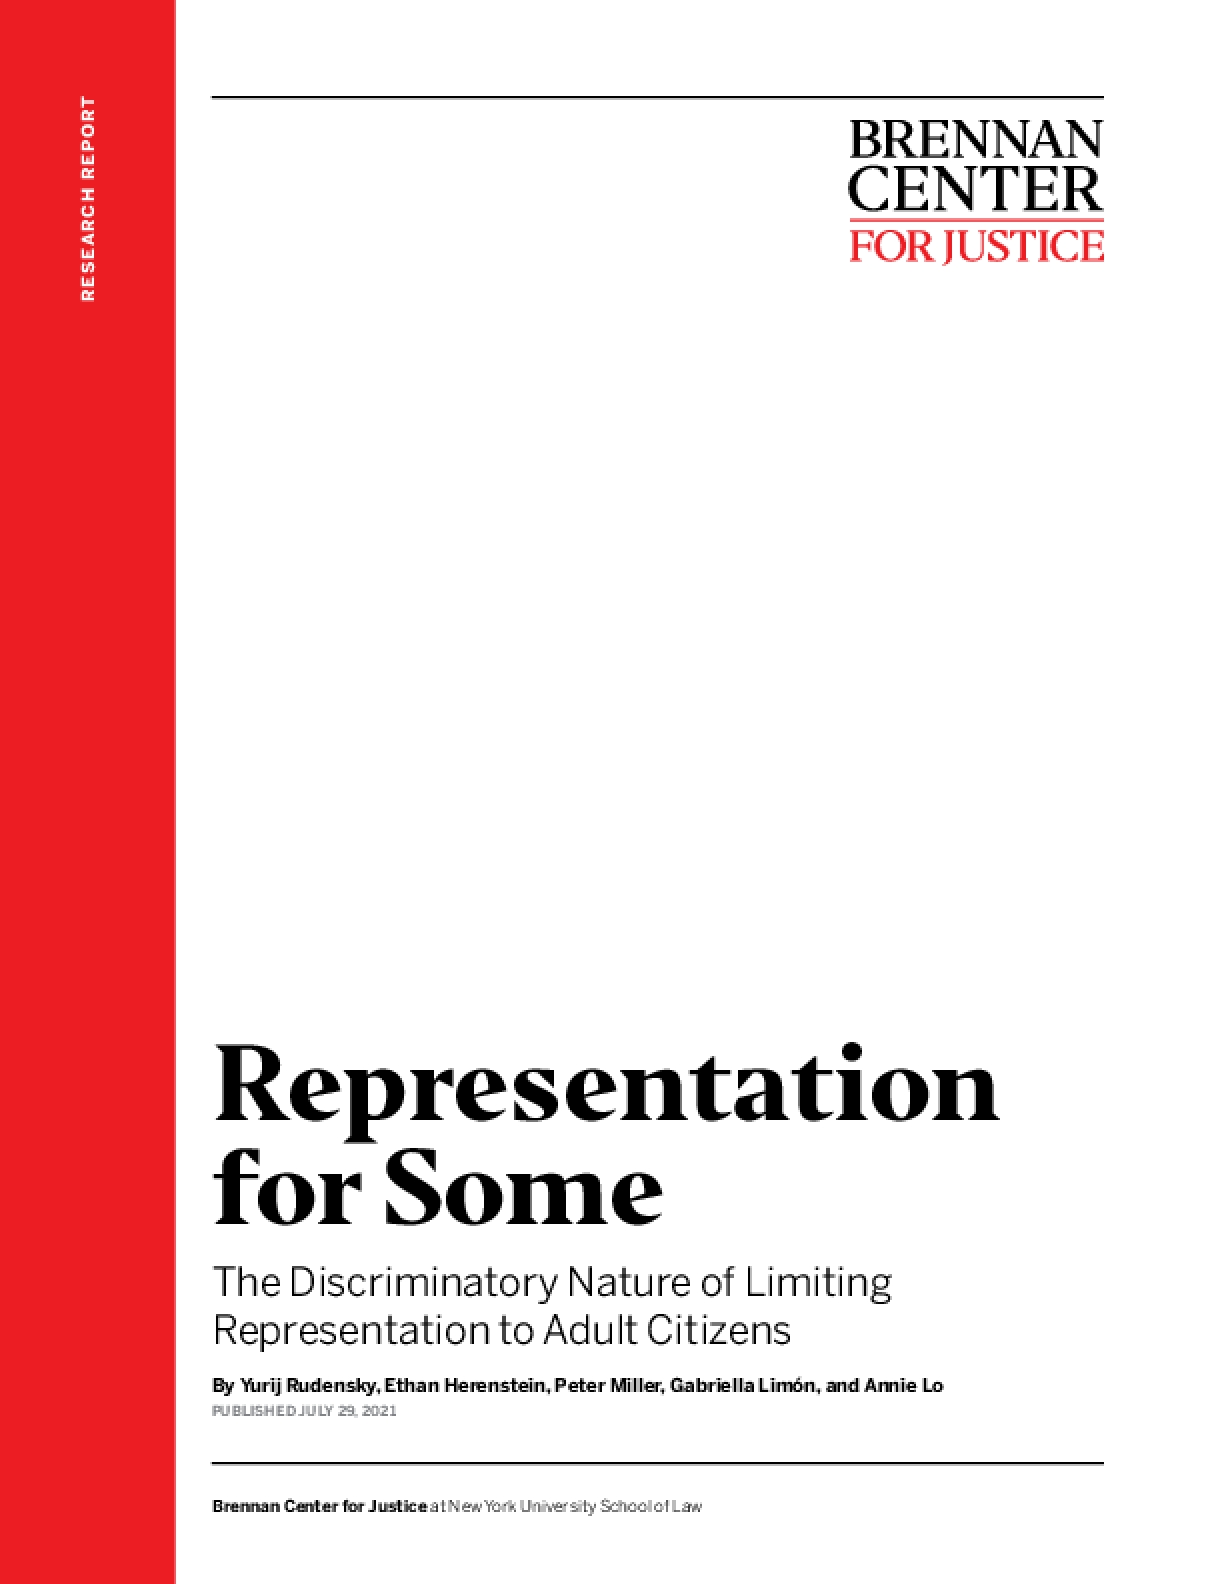 Representation for Some: The Discriminatory Nature of Limiting Representation to Adult Citizens